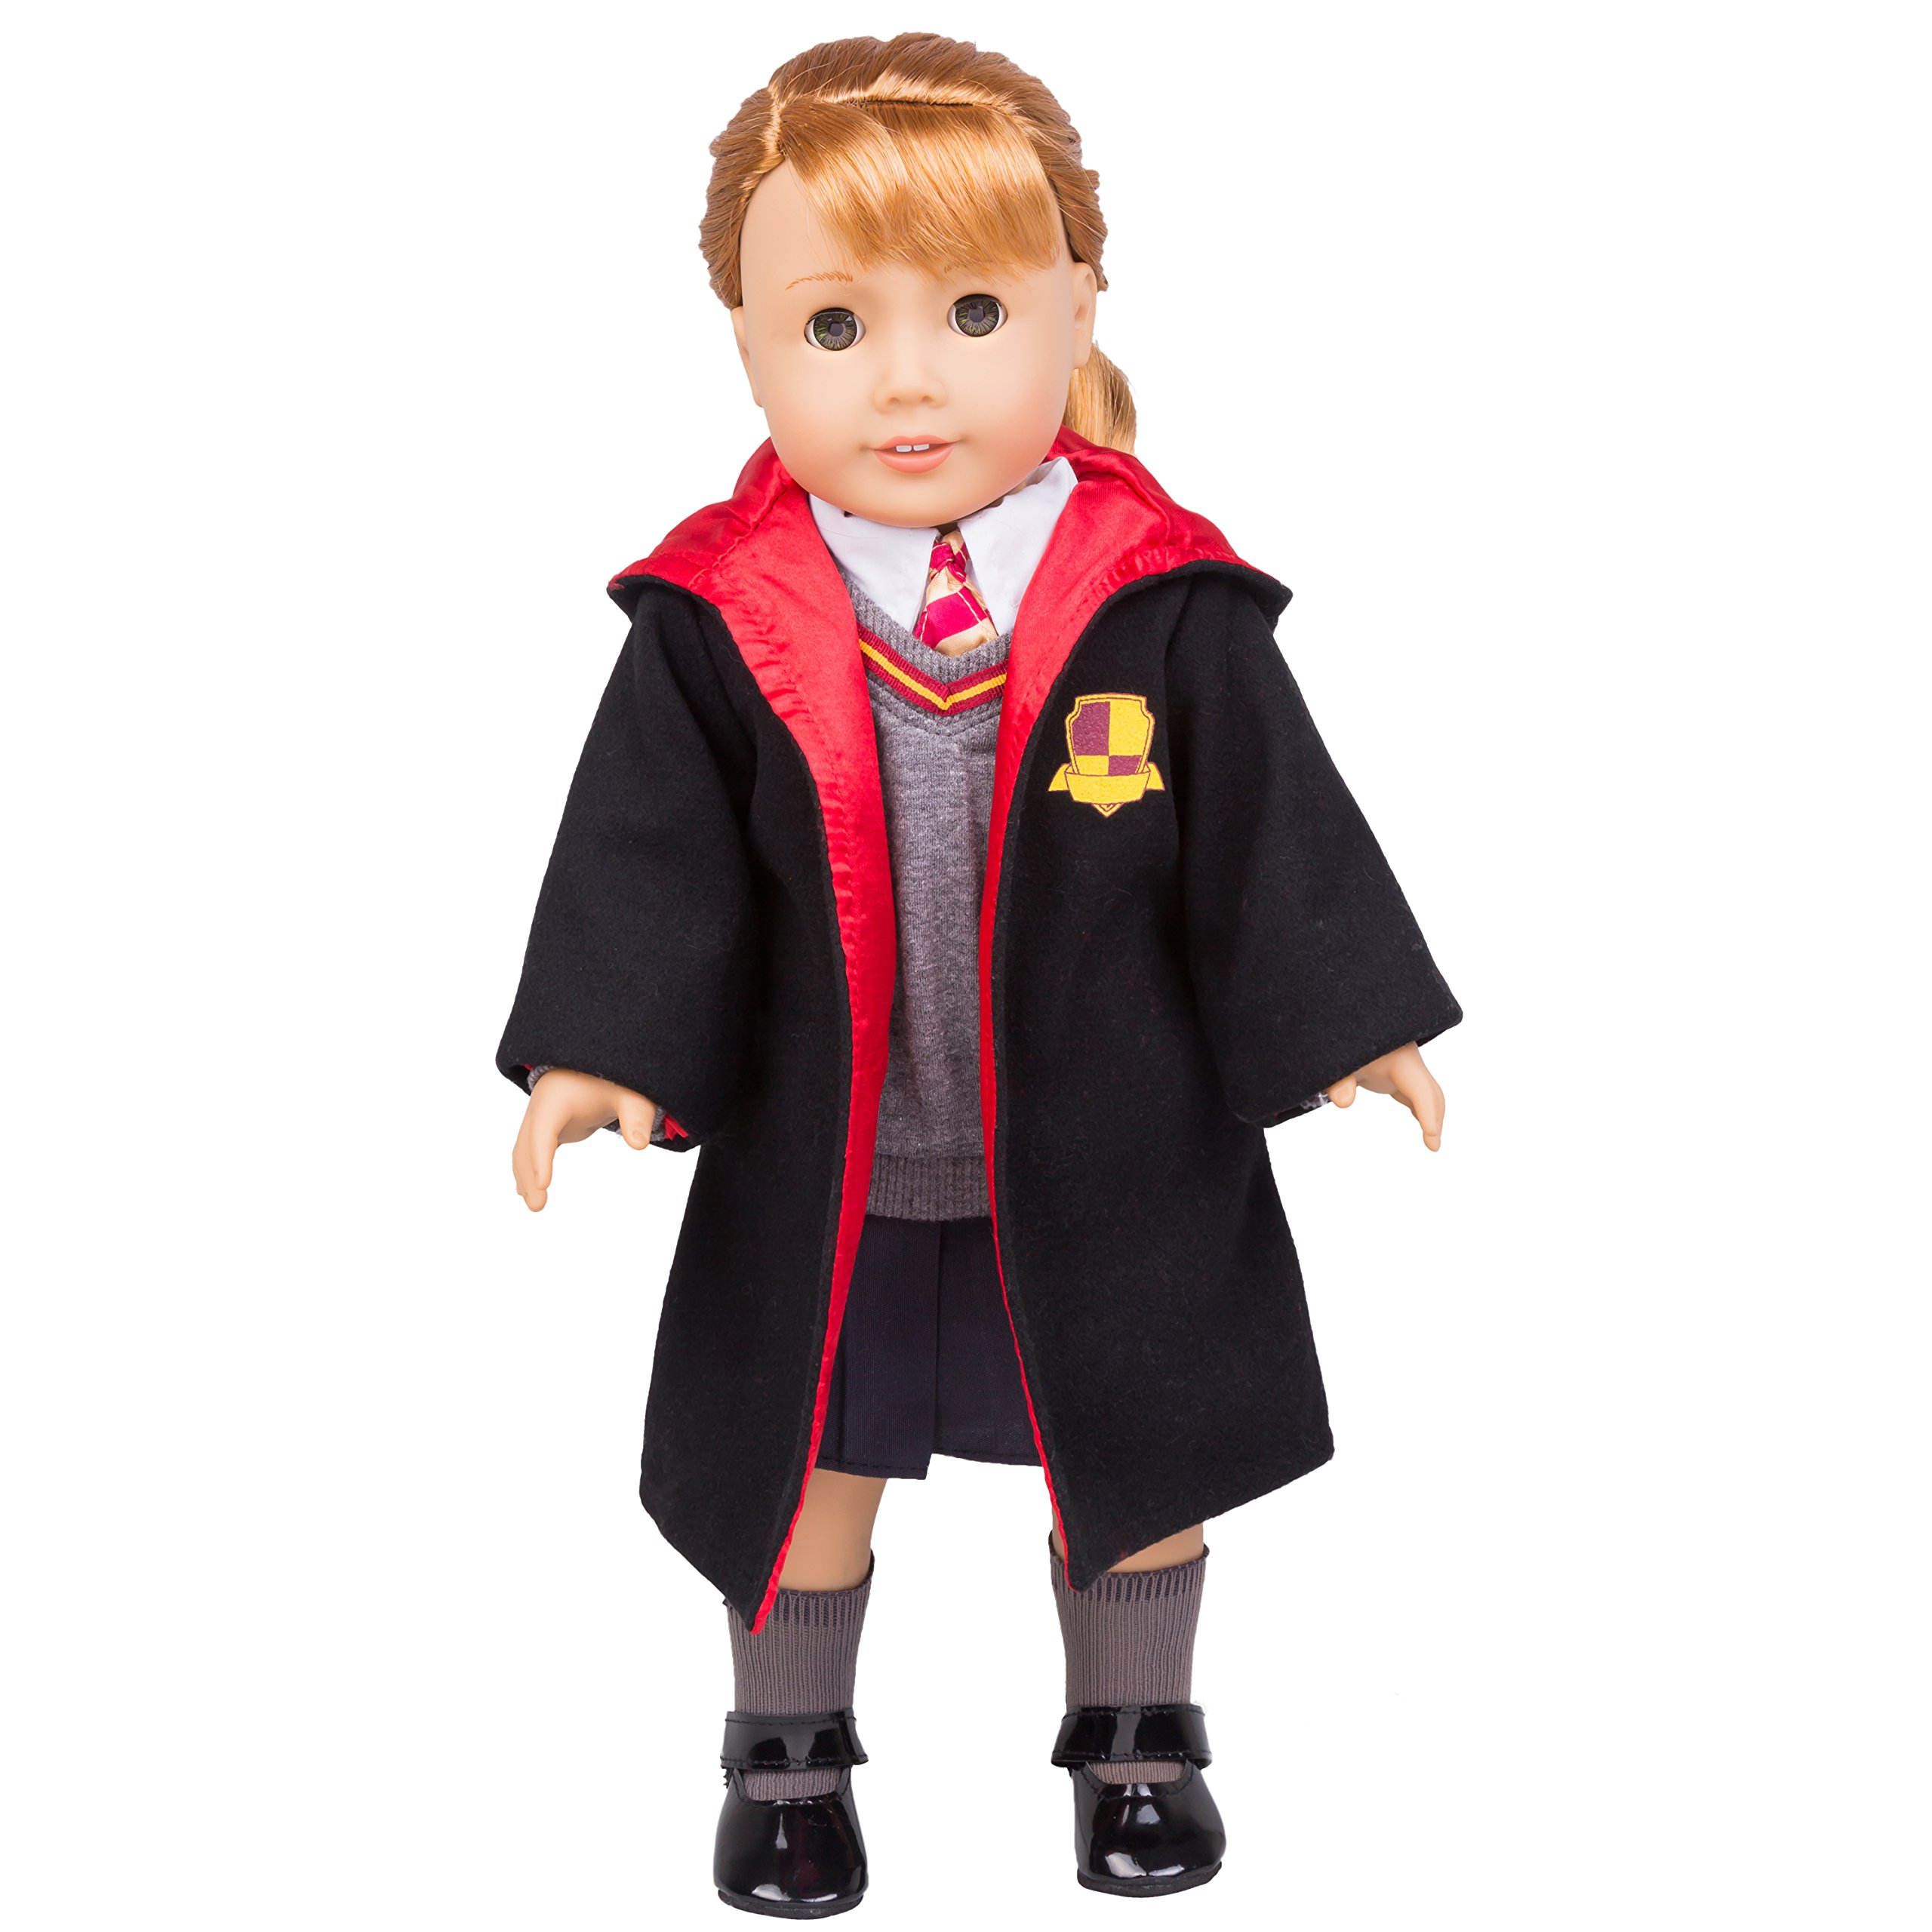 Dress Along Dolly Hermione Granger Inspired Doll Clothes for American Girl and 18'' Dolls: 7pc Hogwarts-Like School Uniform (Includes Shirt, Skirt, Sweater, Tie, Socks, Robe, and Shoes)